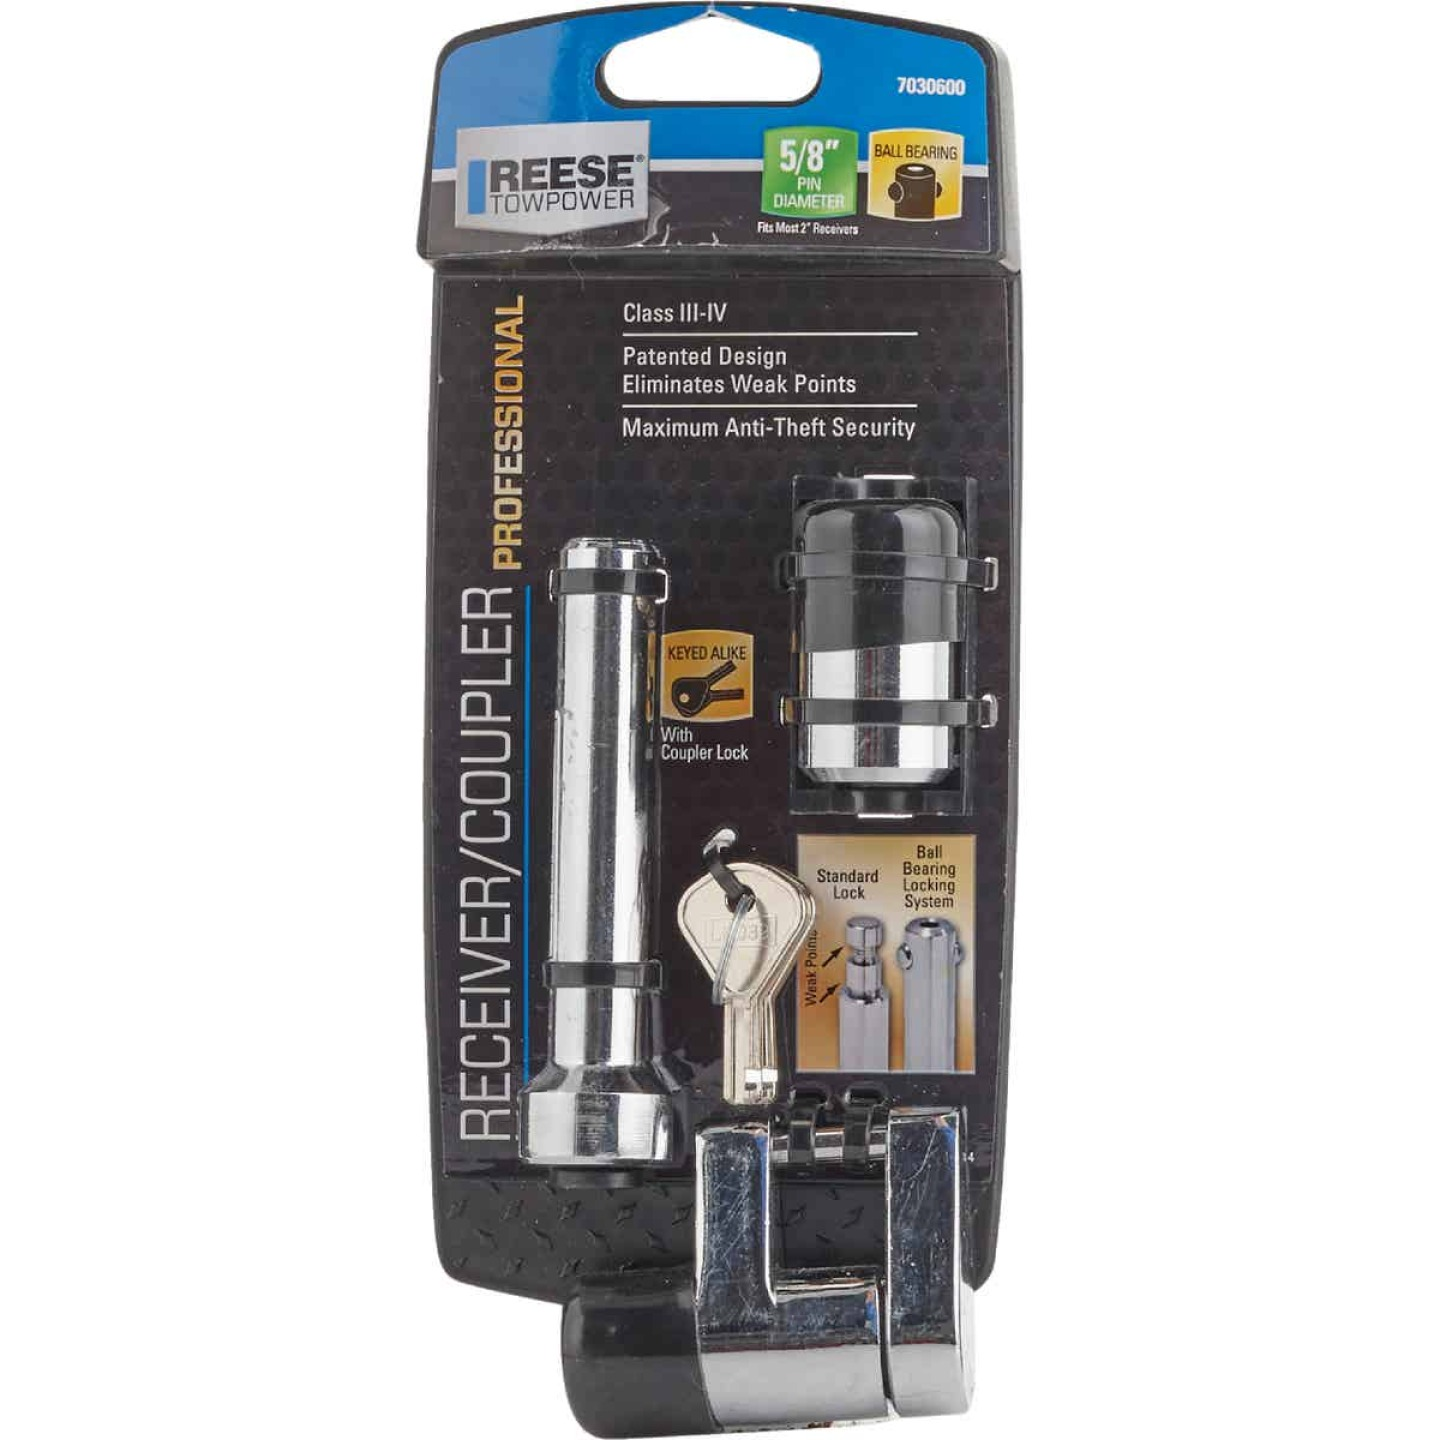 Reese Towpower Chrome-Plated 5/8 In. Dia. Professional Receiver/Coupler Lock Set Image 2